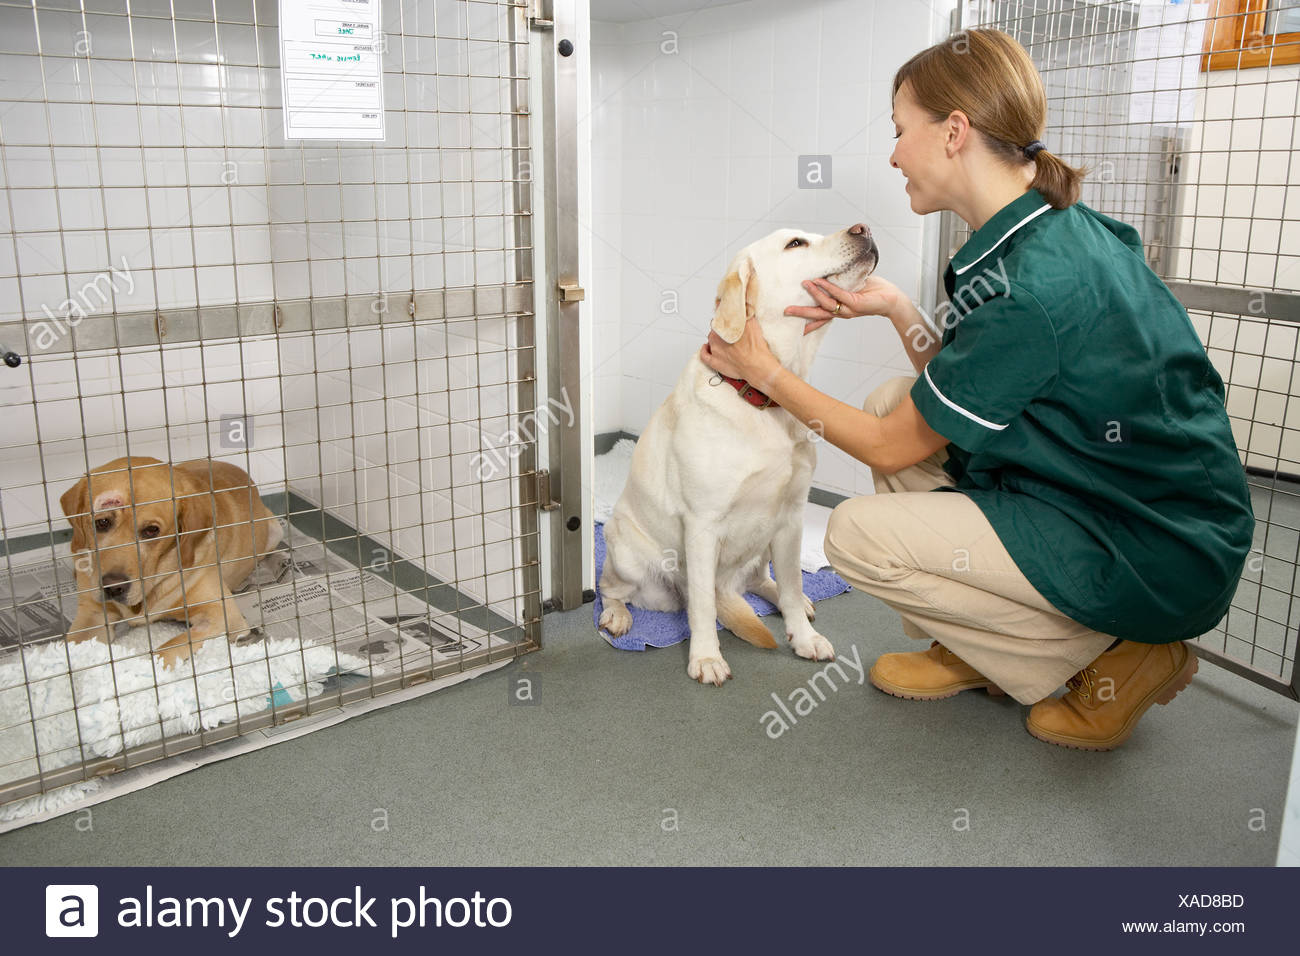 Vetinary Nurse Checking Sick Animals In Pens - Stock Image